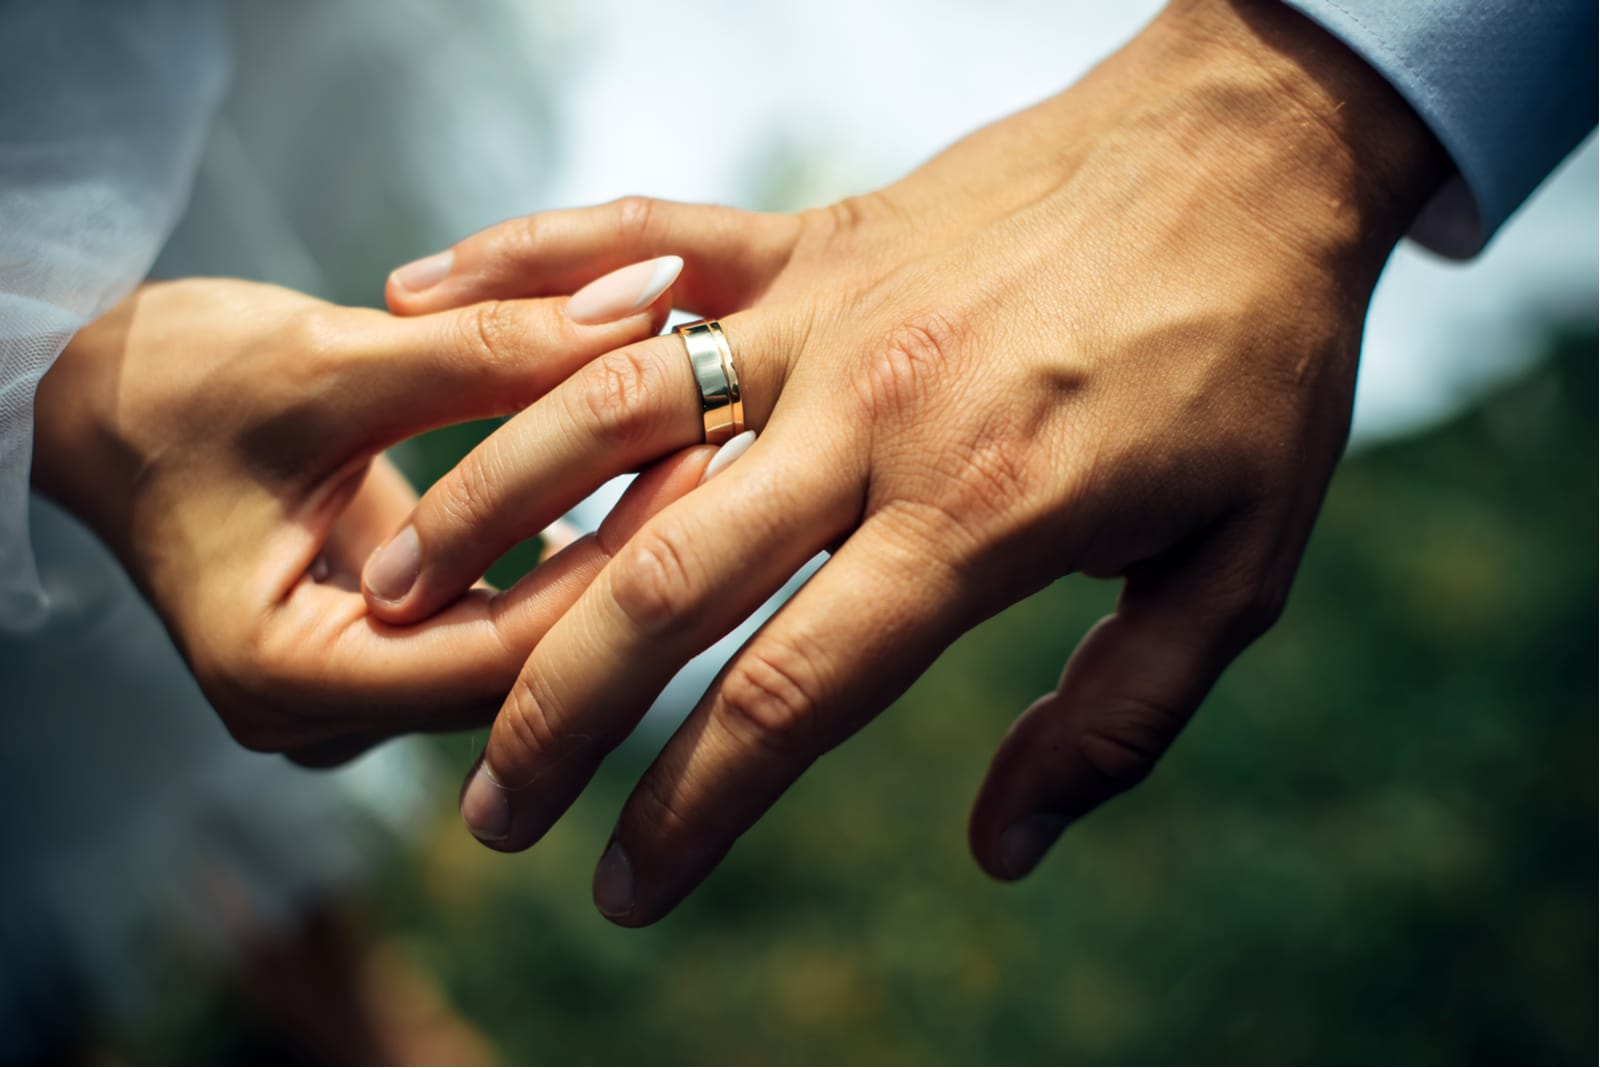 the bride puts the engagement ring on the groom's hand